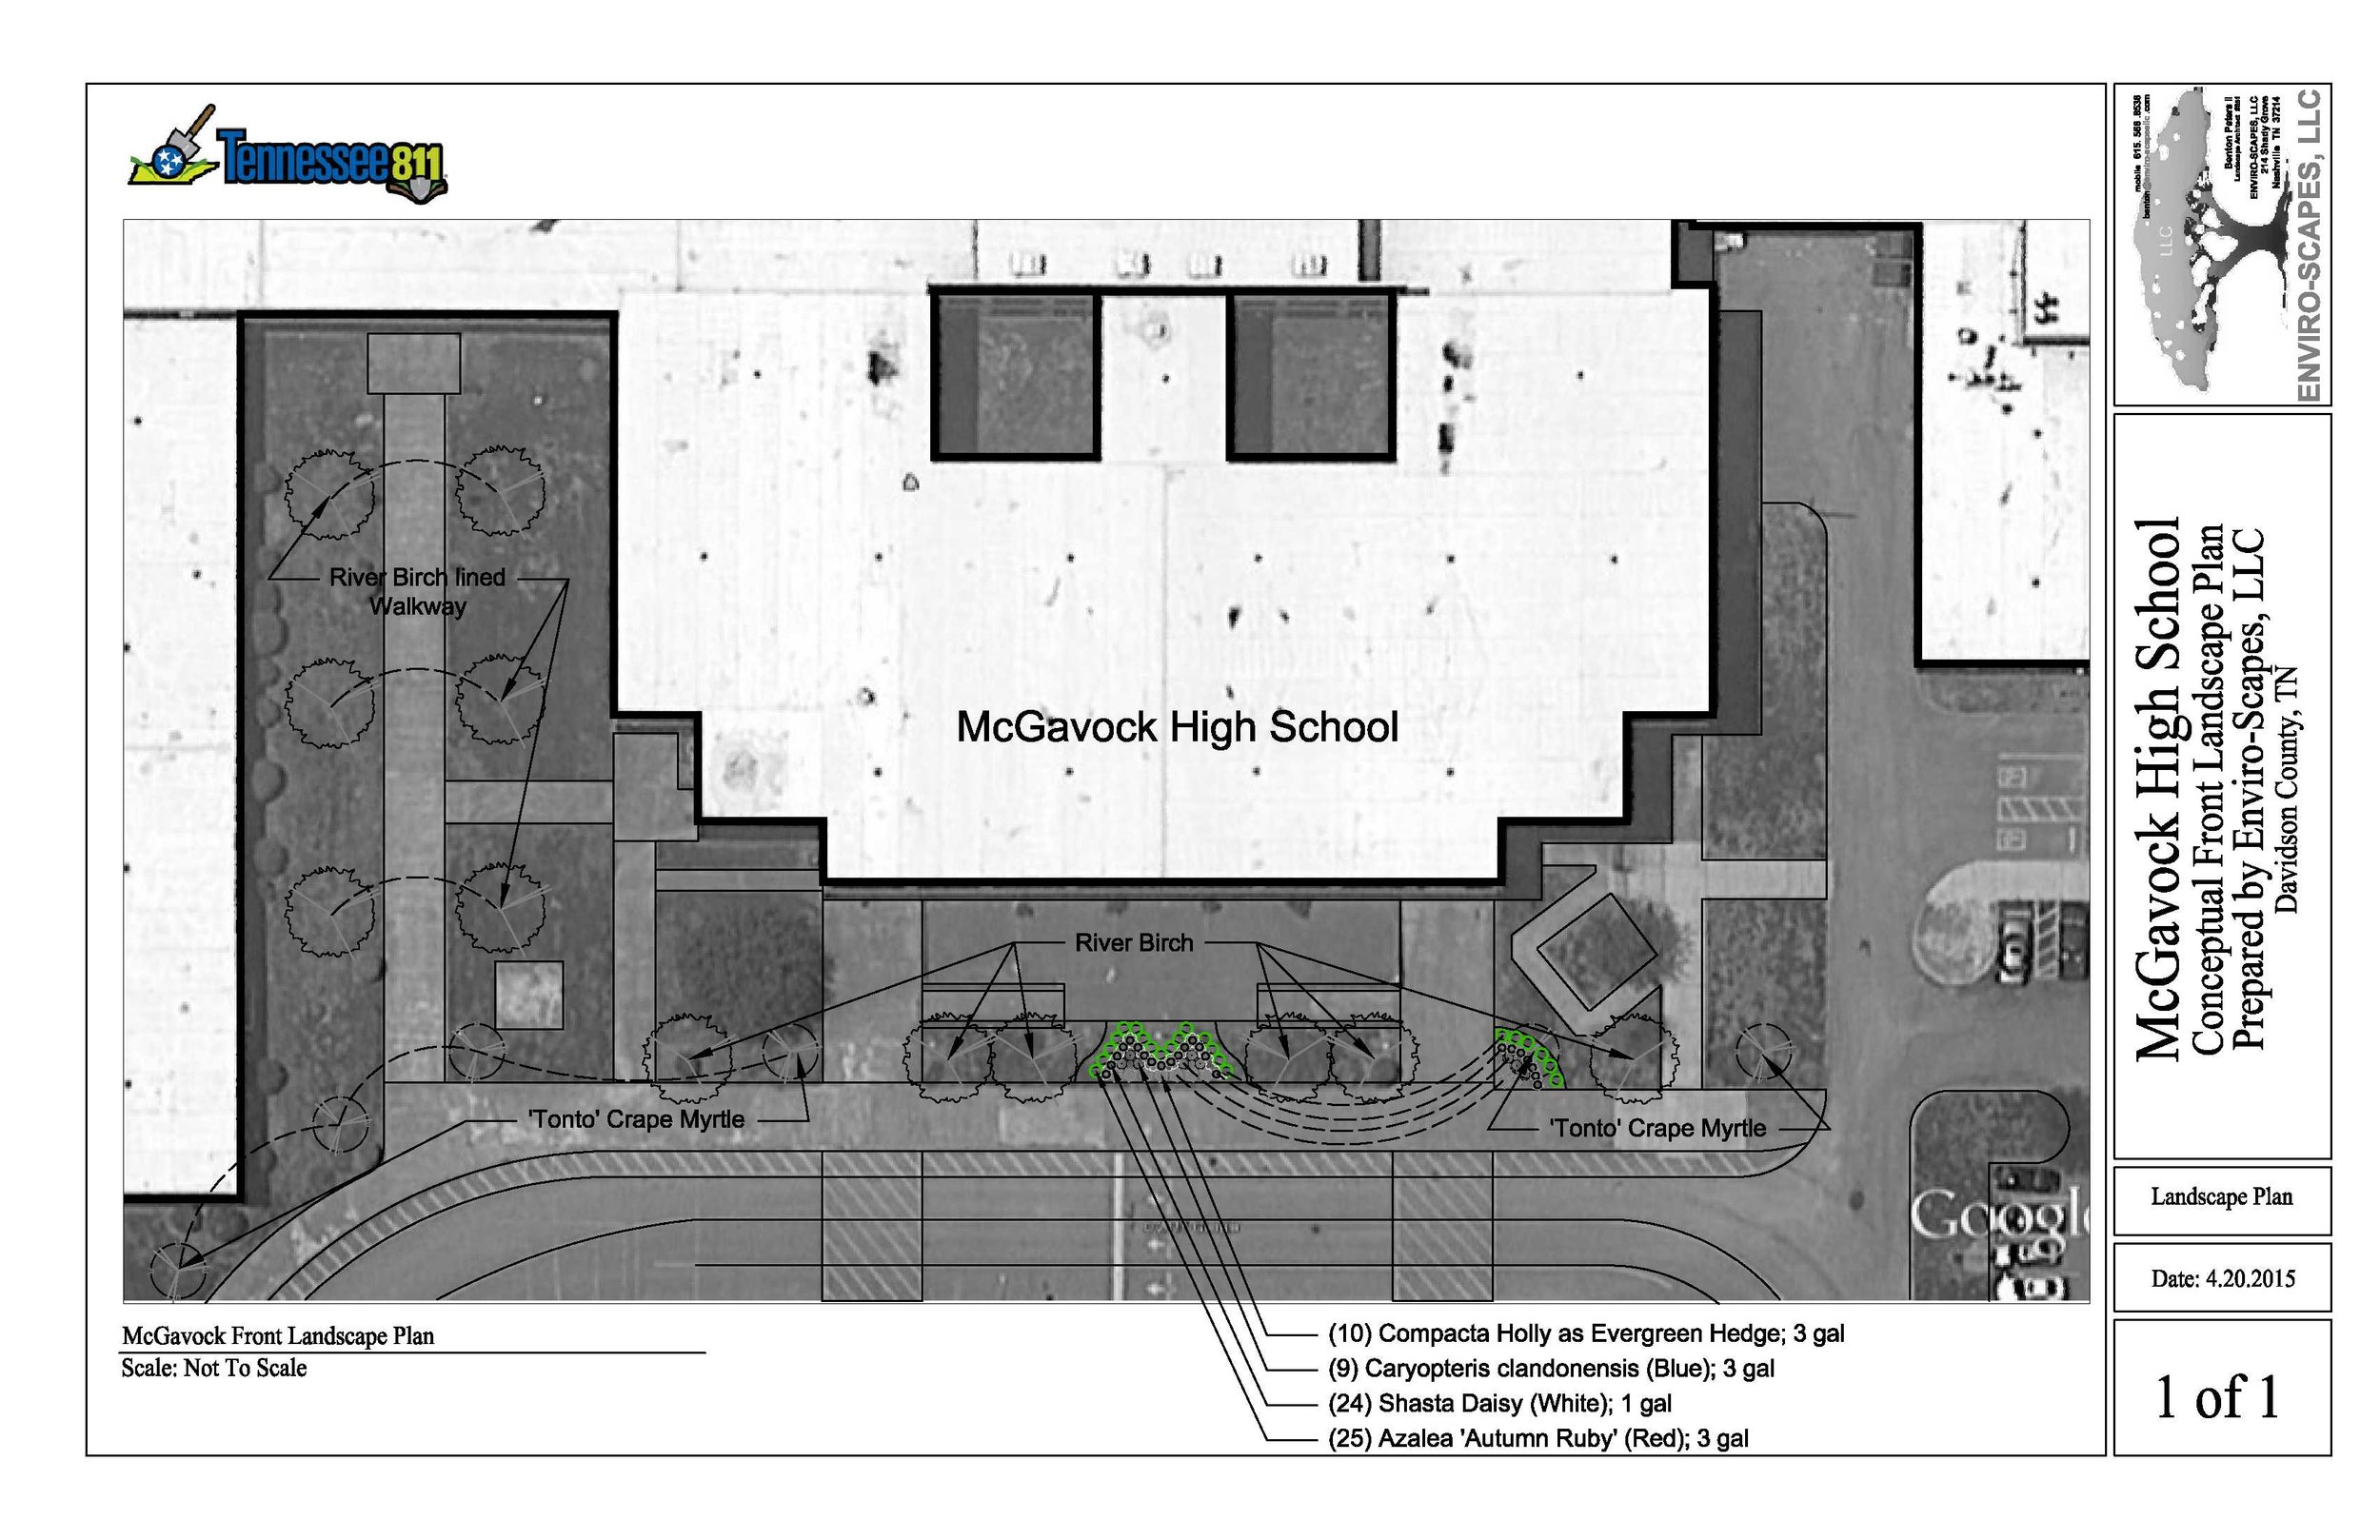 McGavock High School Front Landscape Plan 4.20.2015